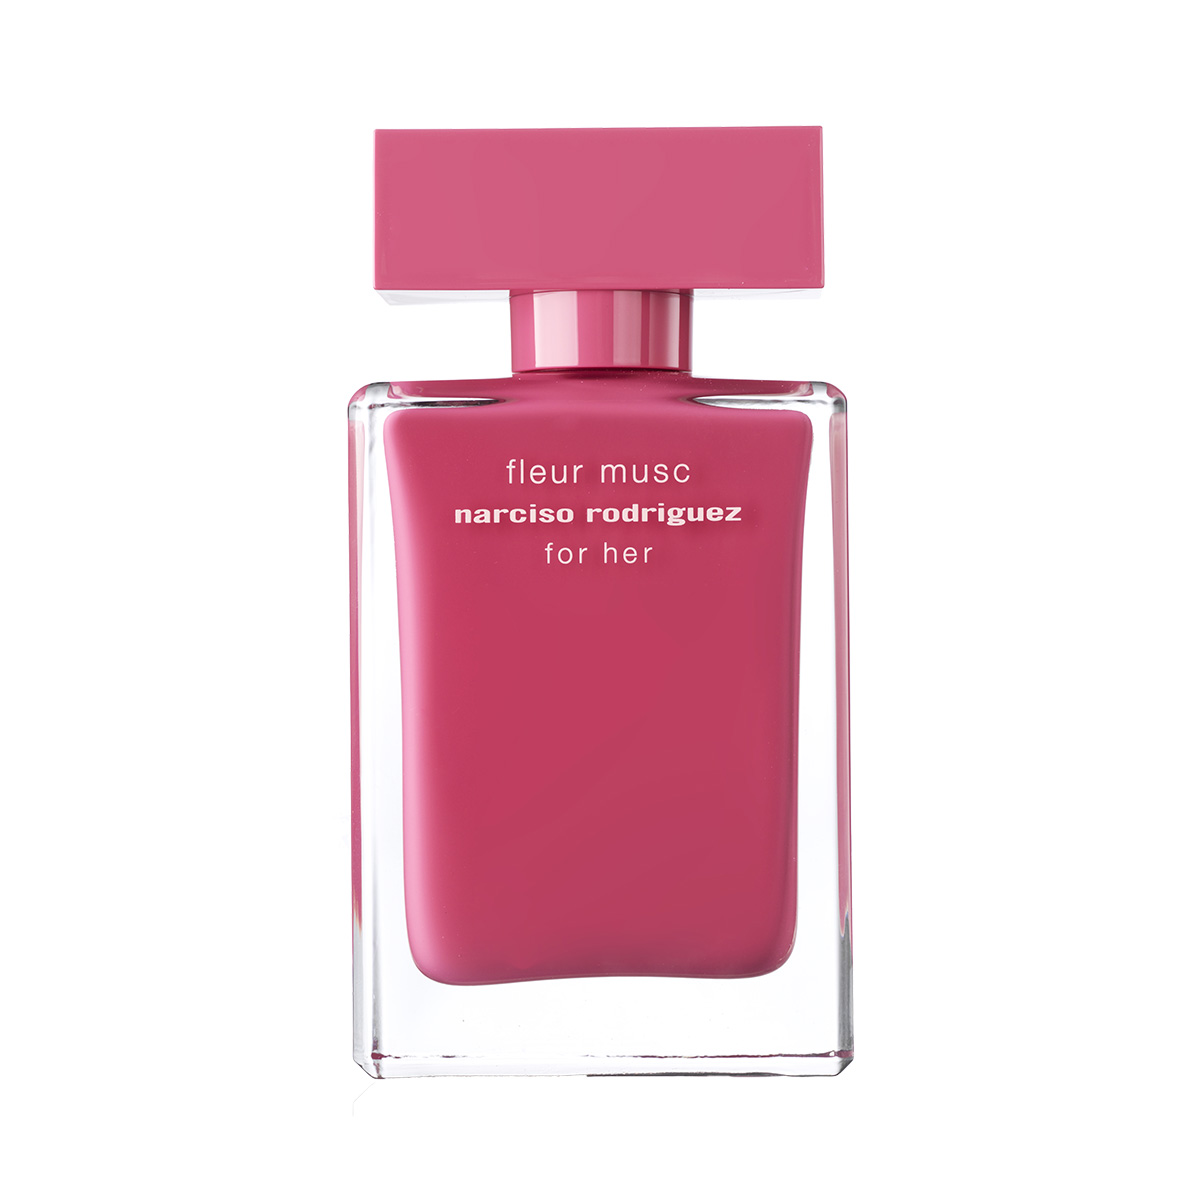 Narciso Rodriguez Fleur Musc For Her EdP - 50 ml